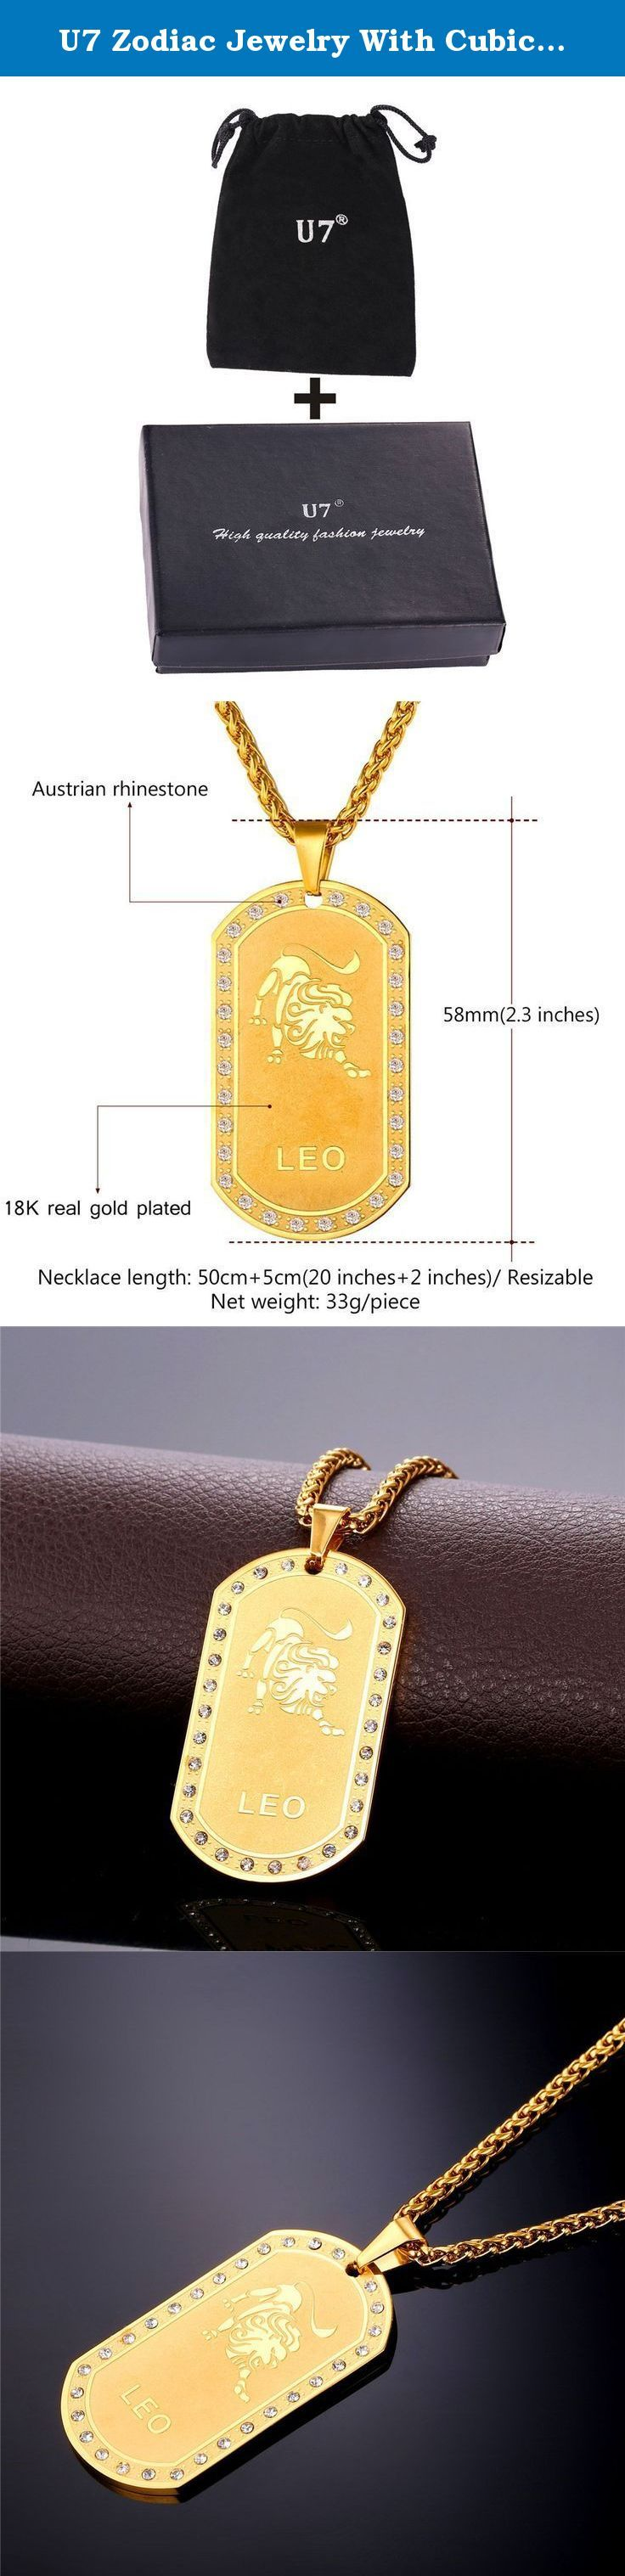 "U7 Zodiac Jewelry With Cubic Zirconia Men 18K Gold Plated Dog Tag Pendant Necklace - Leo. Product details Material:Stainless Steel,18k gold plated,AAA cubic zirconia. Net weight:33g. Dog tags pendant,with twelve zodiac signs.Birthday gift for men and women. Pendant:2.3 inches,chain:20 inches,with 2 inches extending chain. Brand name: U7 ""U7"" means love you seven days for a week. U7 Jewelry is fashion jewelry seller in Amazon. U7 Jewelry is made with German imported polishing and..."